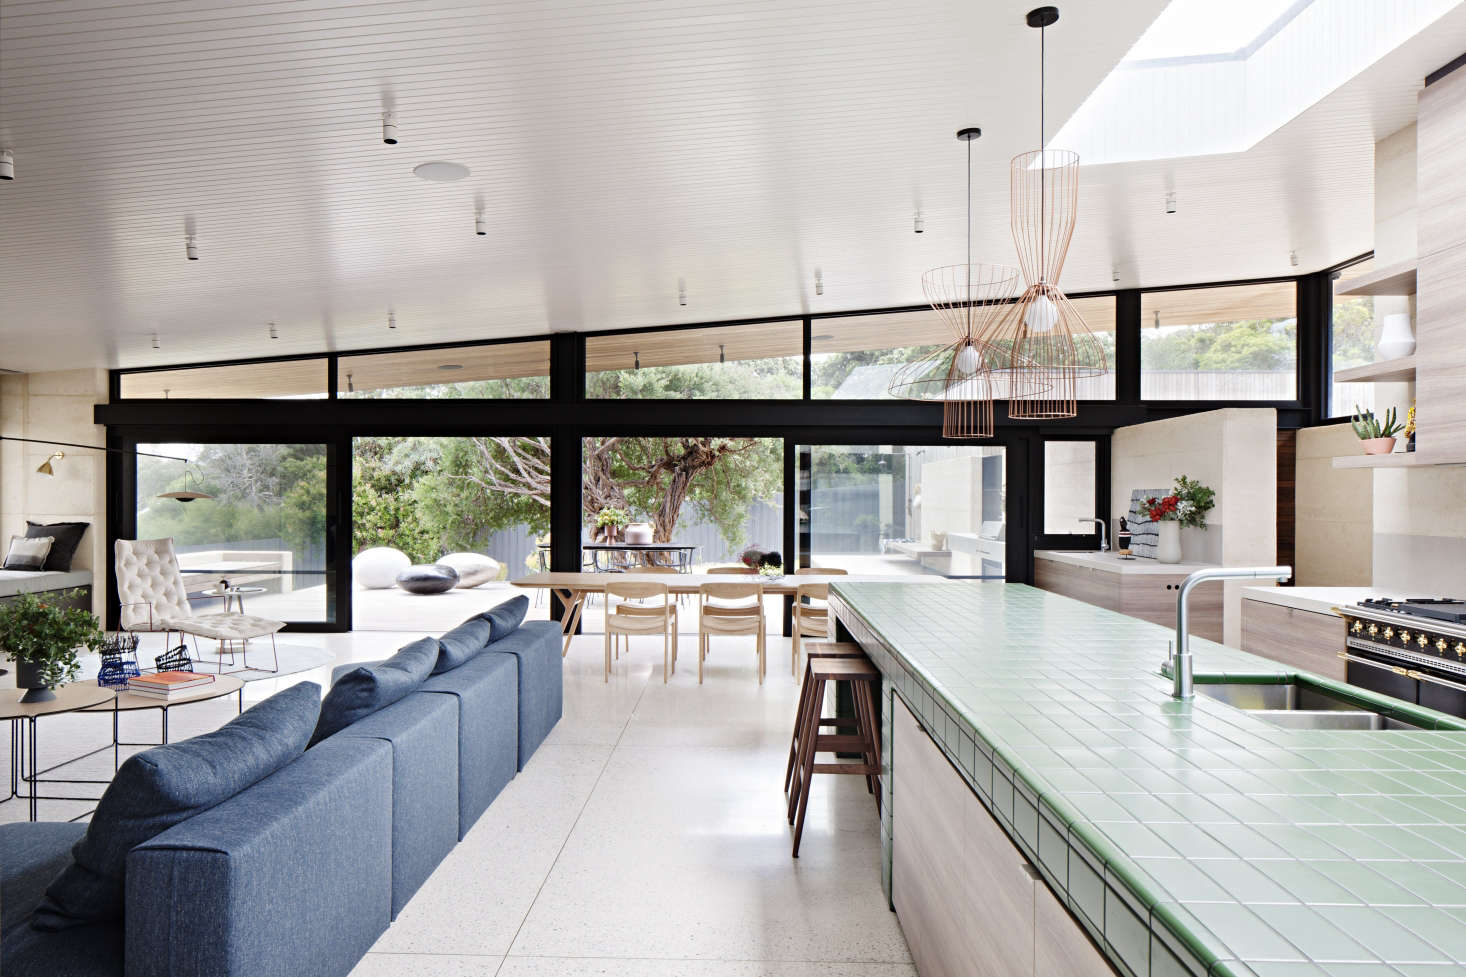 Tiled Kitchen Island In Contemporary Wood Kitchen At Layer House By - Tiled kitchen island